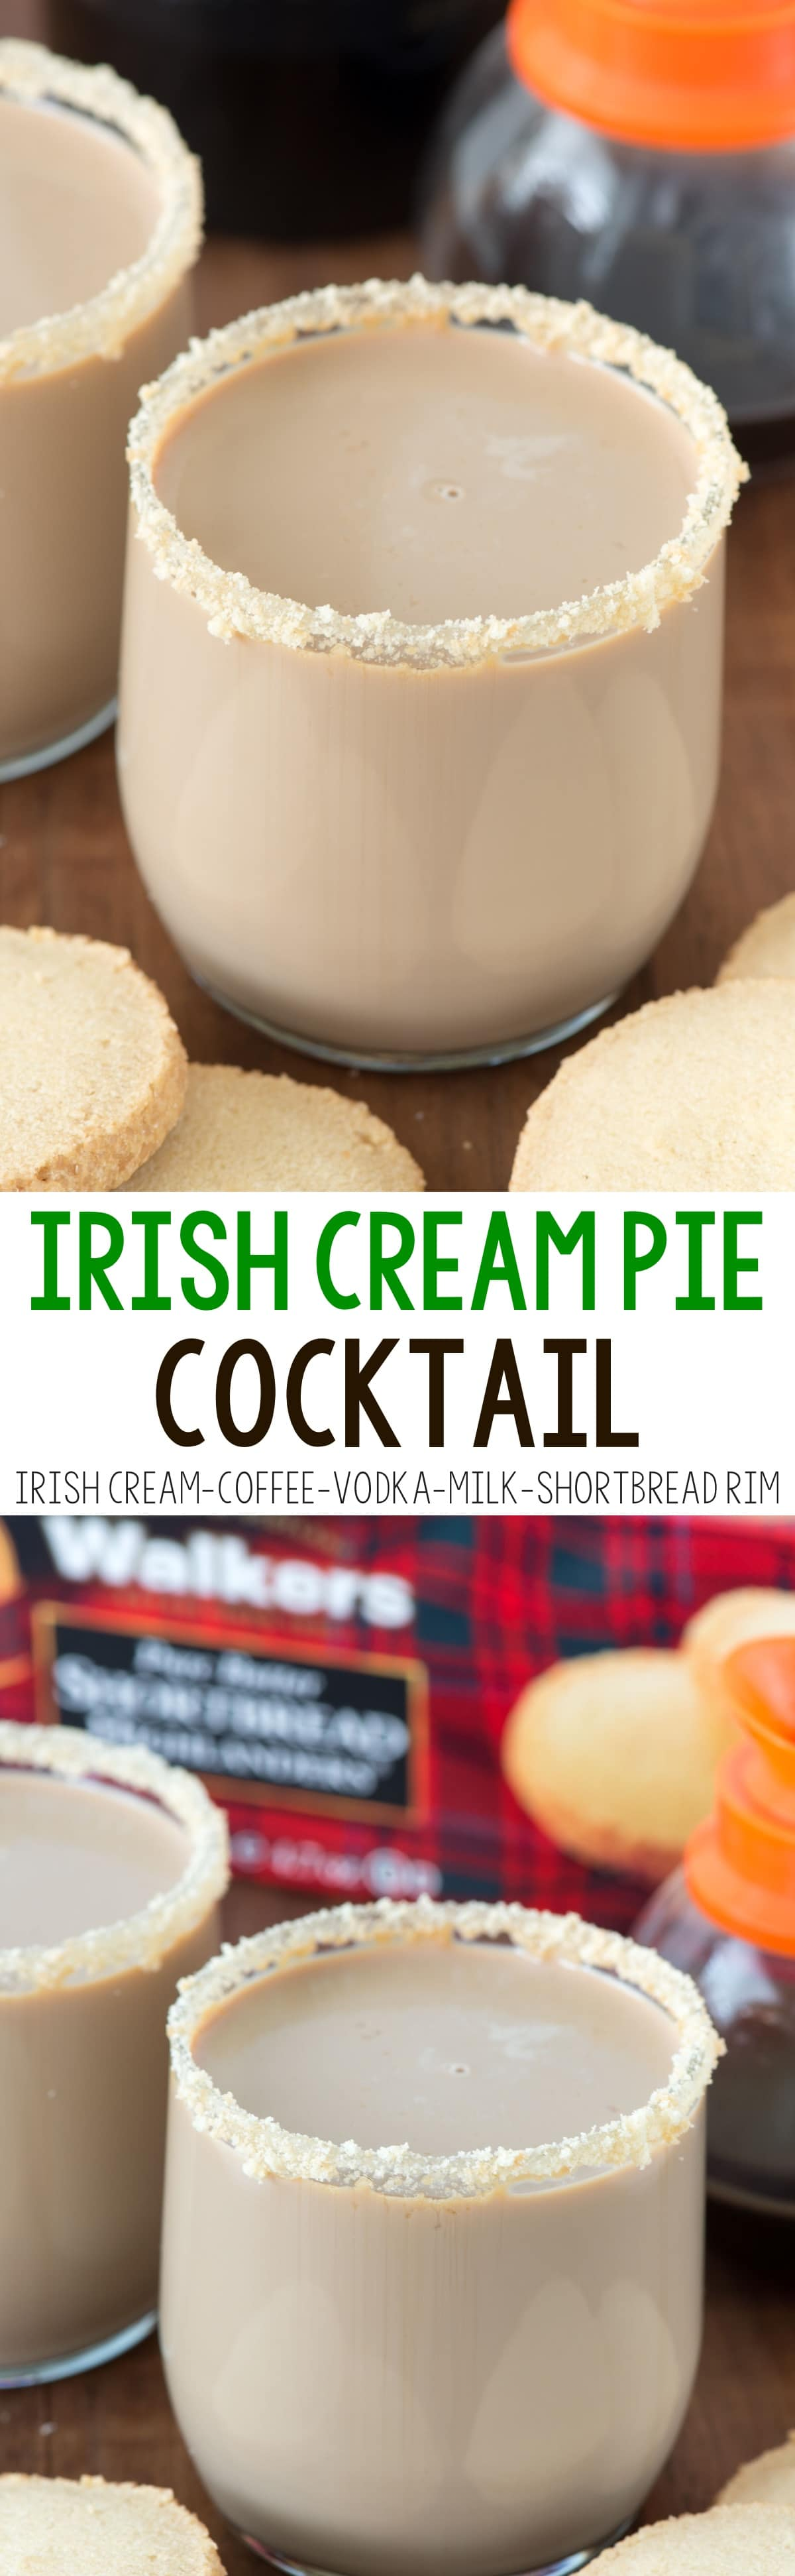 Irish Cream Pie Cocktail - this easy drink recipe combines Baileys, coffee, vodka, and milk and tastes like an Irish Cream Pie...with a shortbread cookie rim!